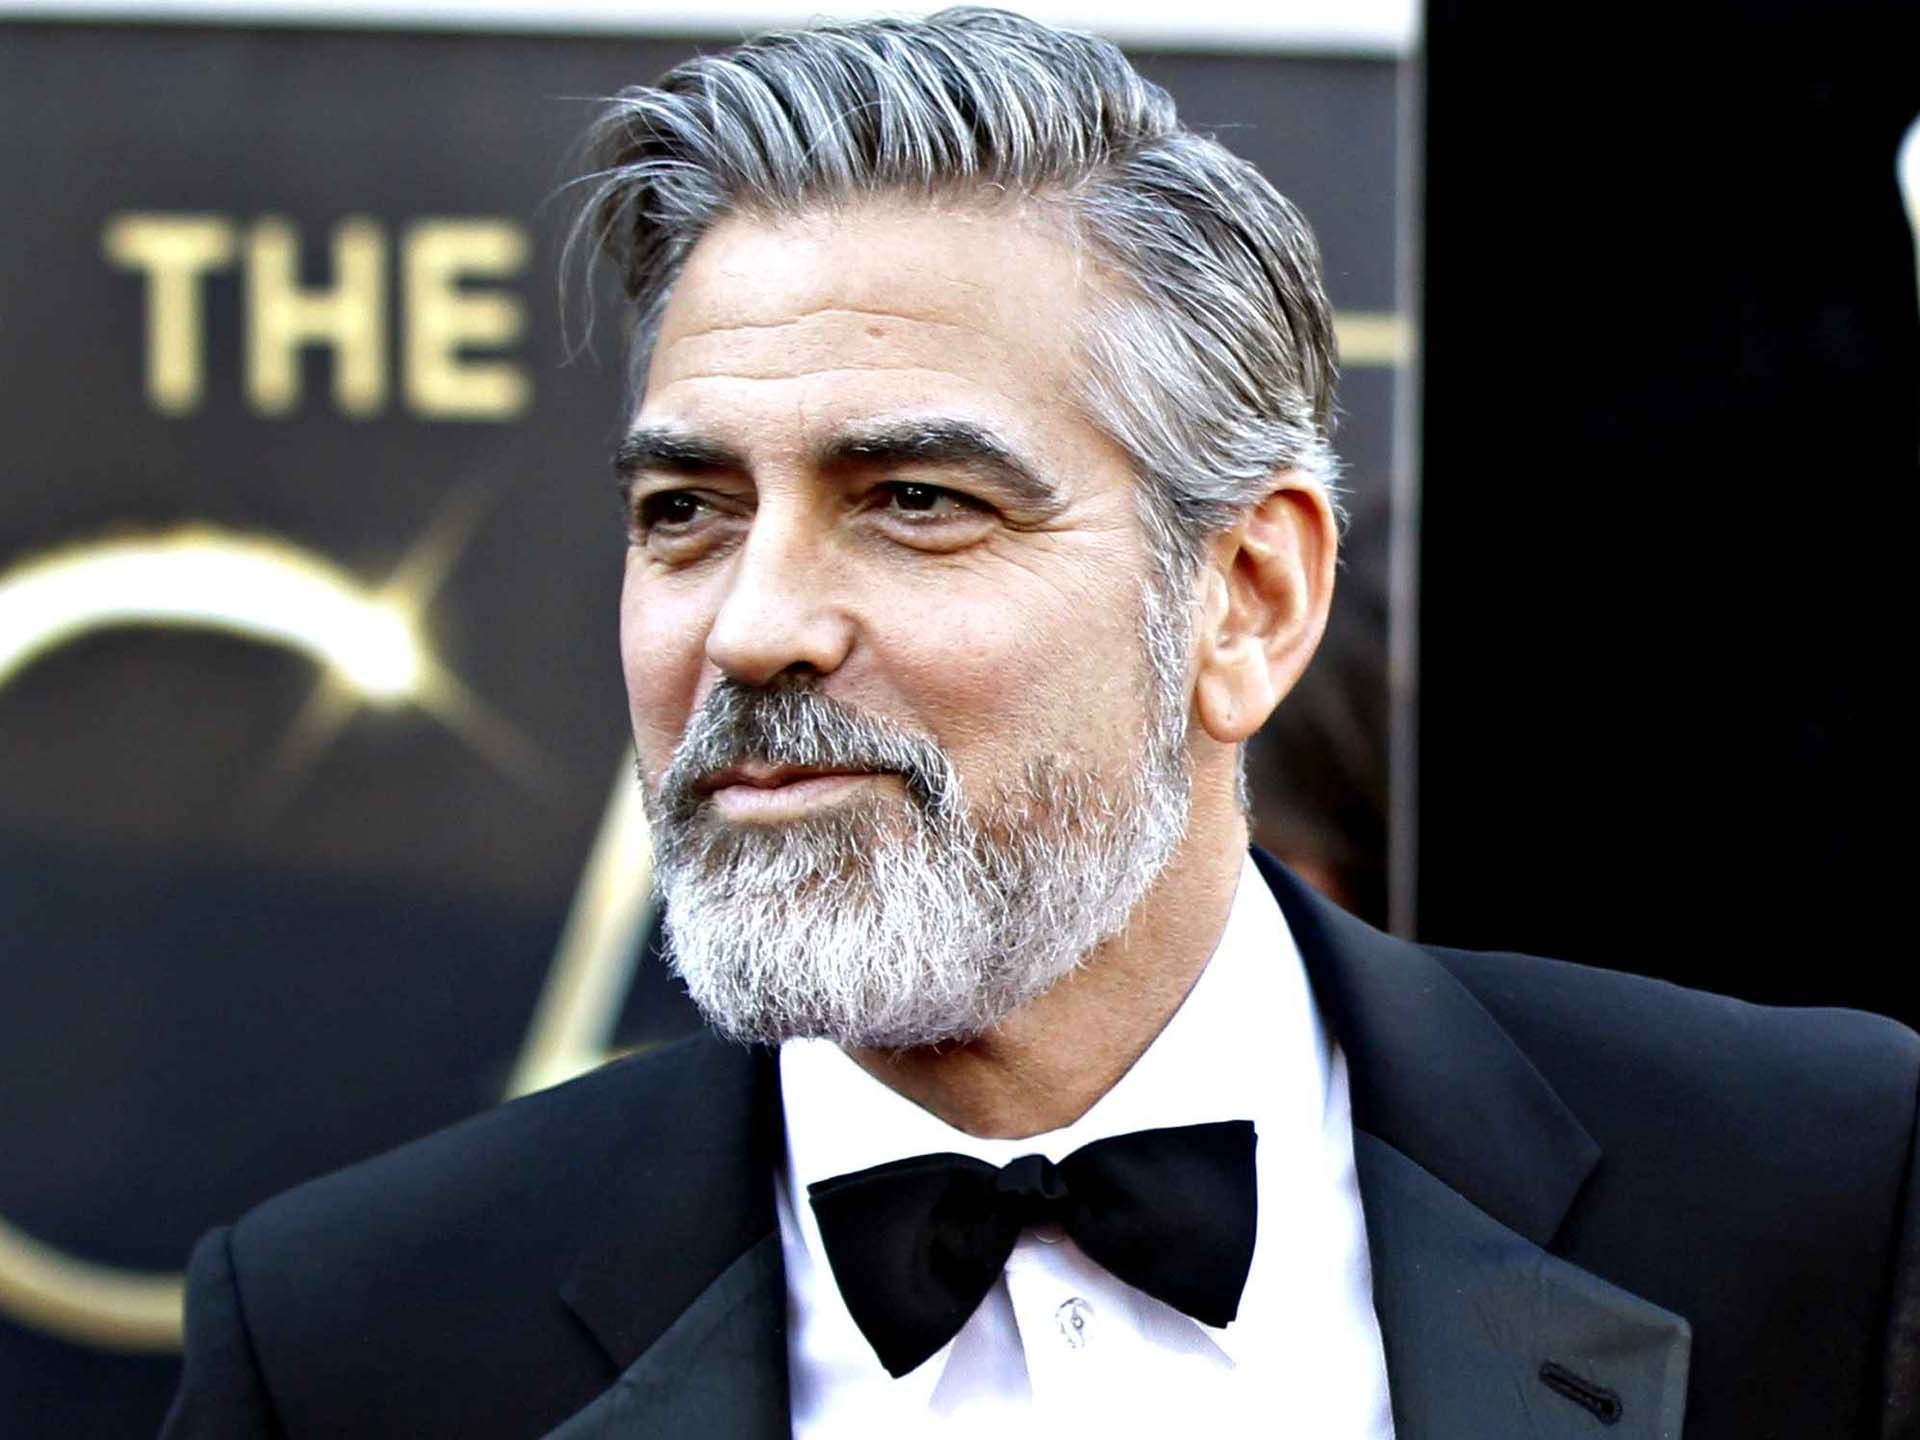 HD George Clooney Wallpapers and Photos HD Celebrities Wallpapers 1920x1440